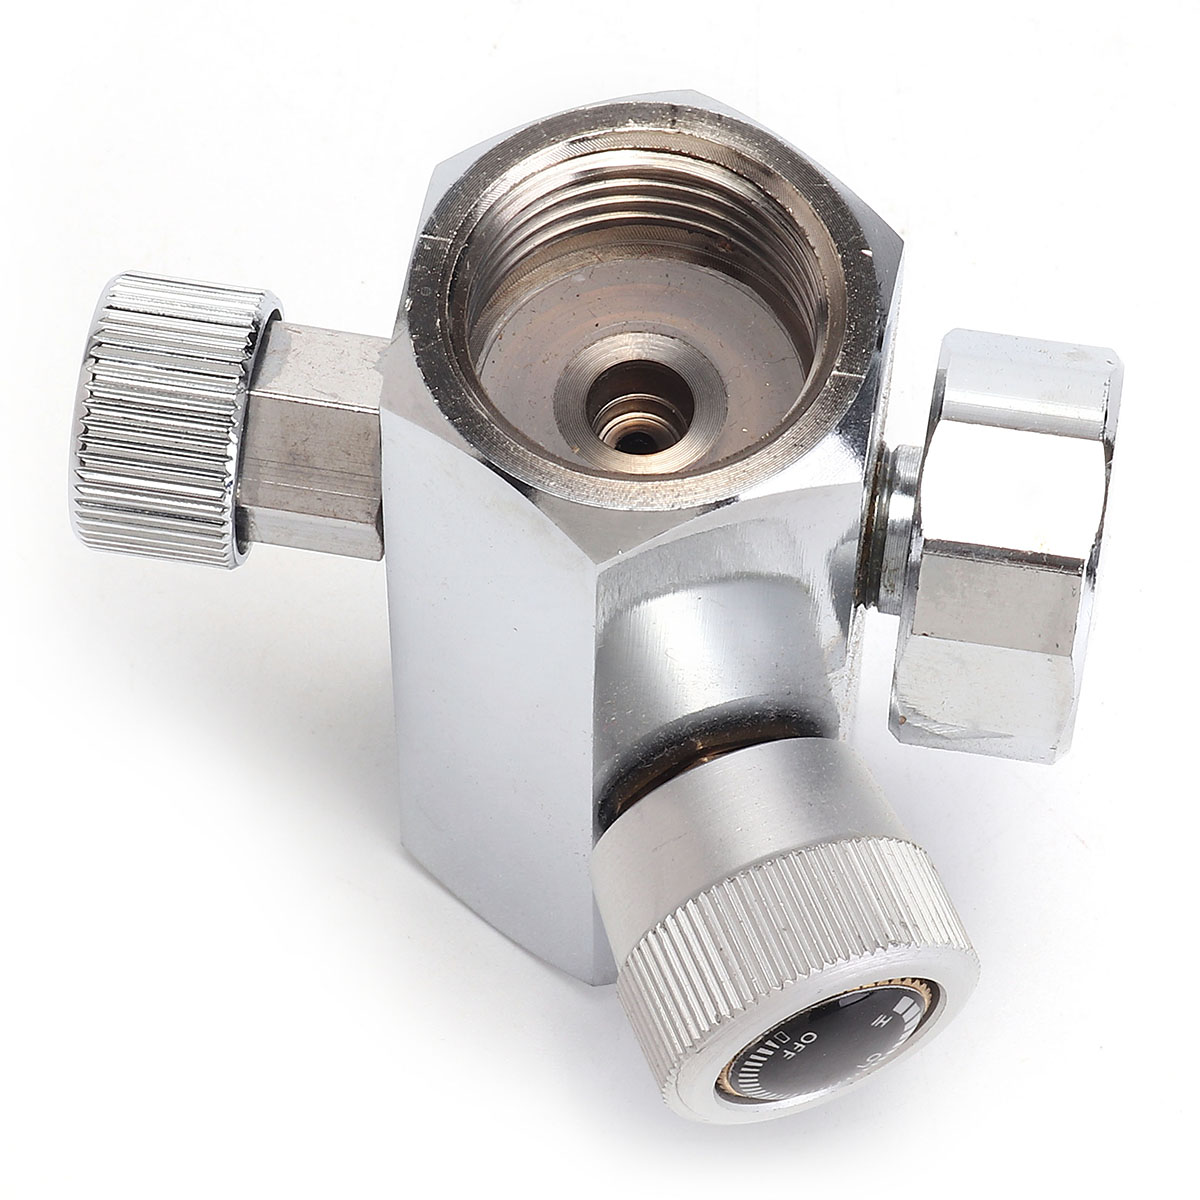 0-2000PSI Homebrew CO2 Cylinder Refill Adapter Connector DIN 477 W21.8 BS 34